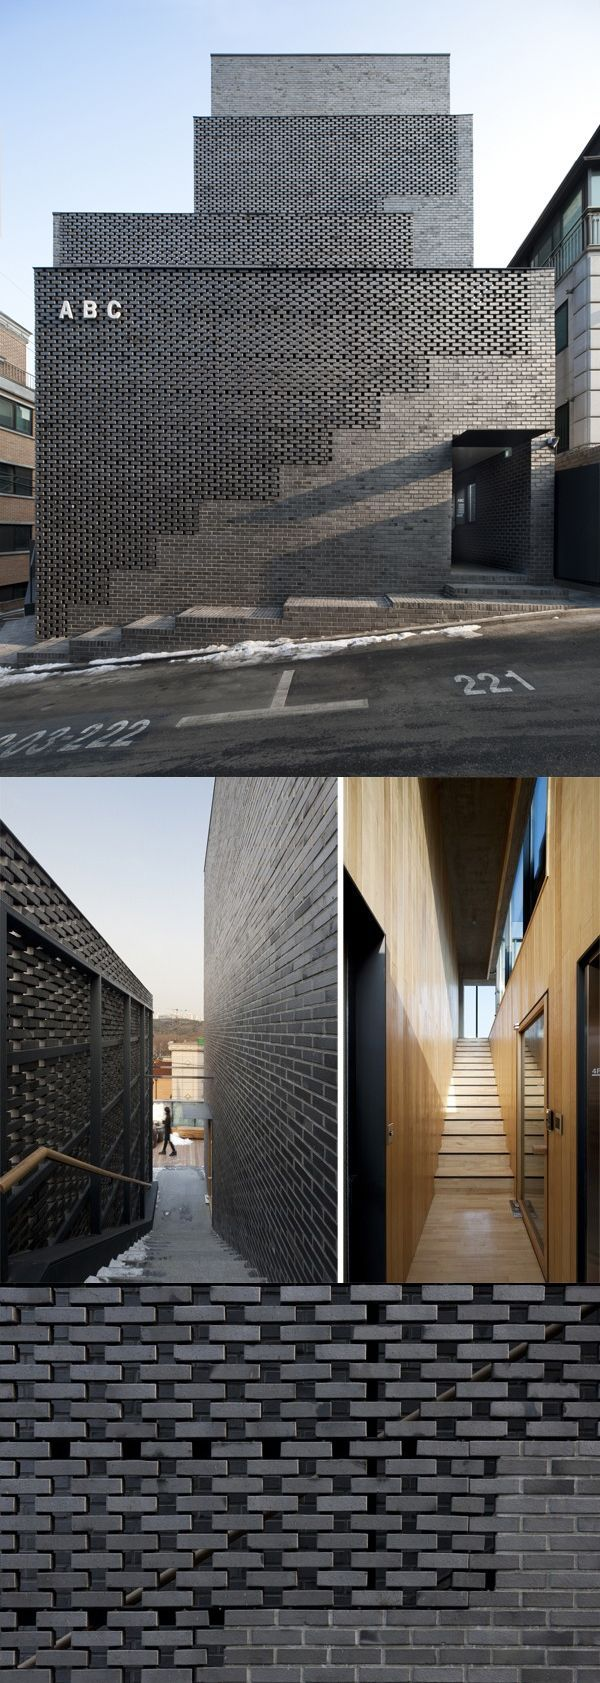 We love this contemporary brick facade!   Fachada de ladrillo negro, muro exterior al edificio, sobre la escalera, refuerzo de estructura metalica camuflado. ABC Building. | Referencias | Pinterest